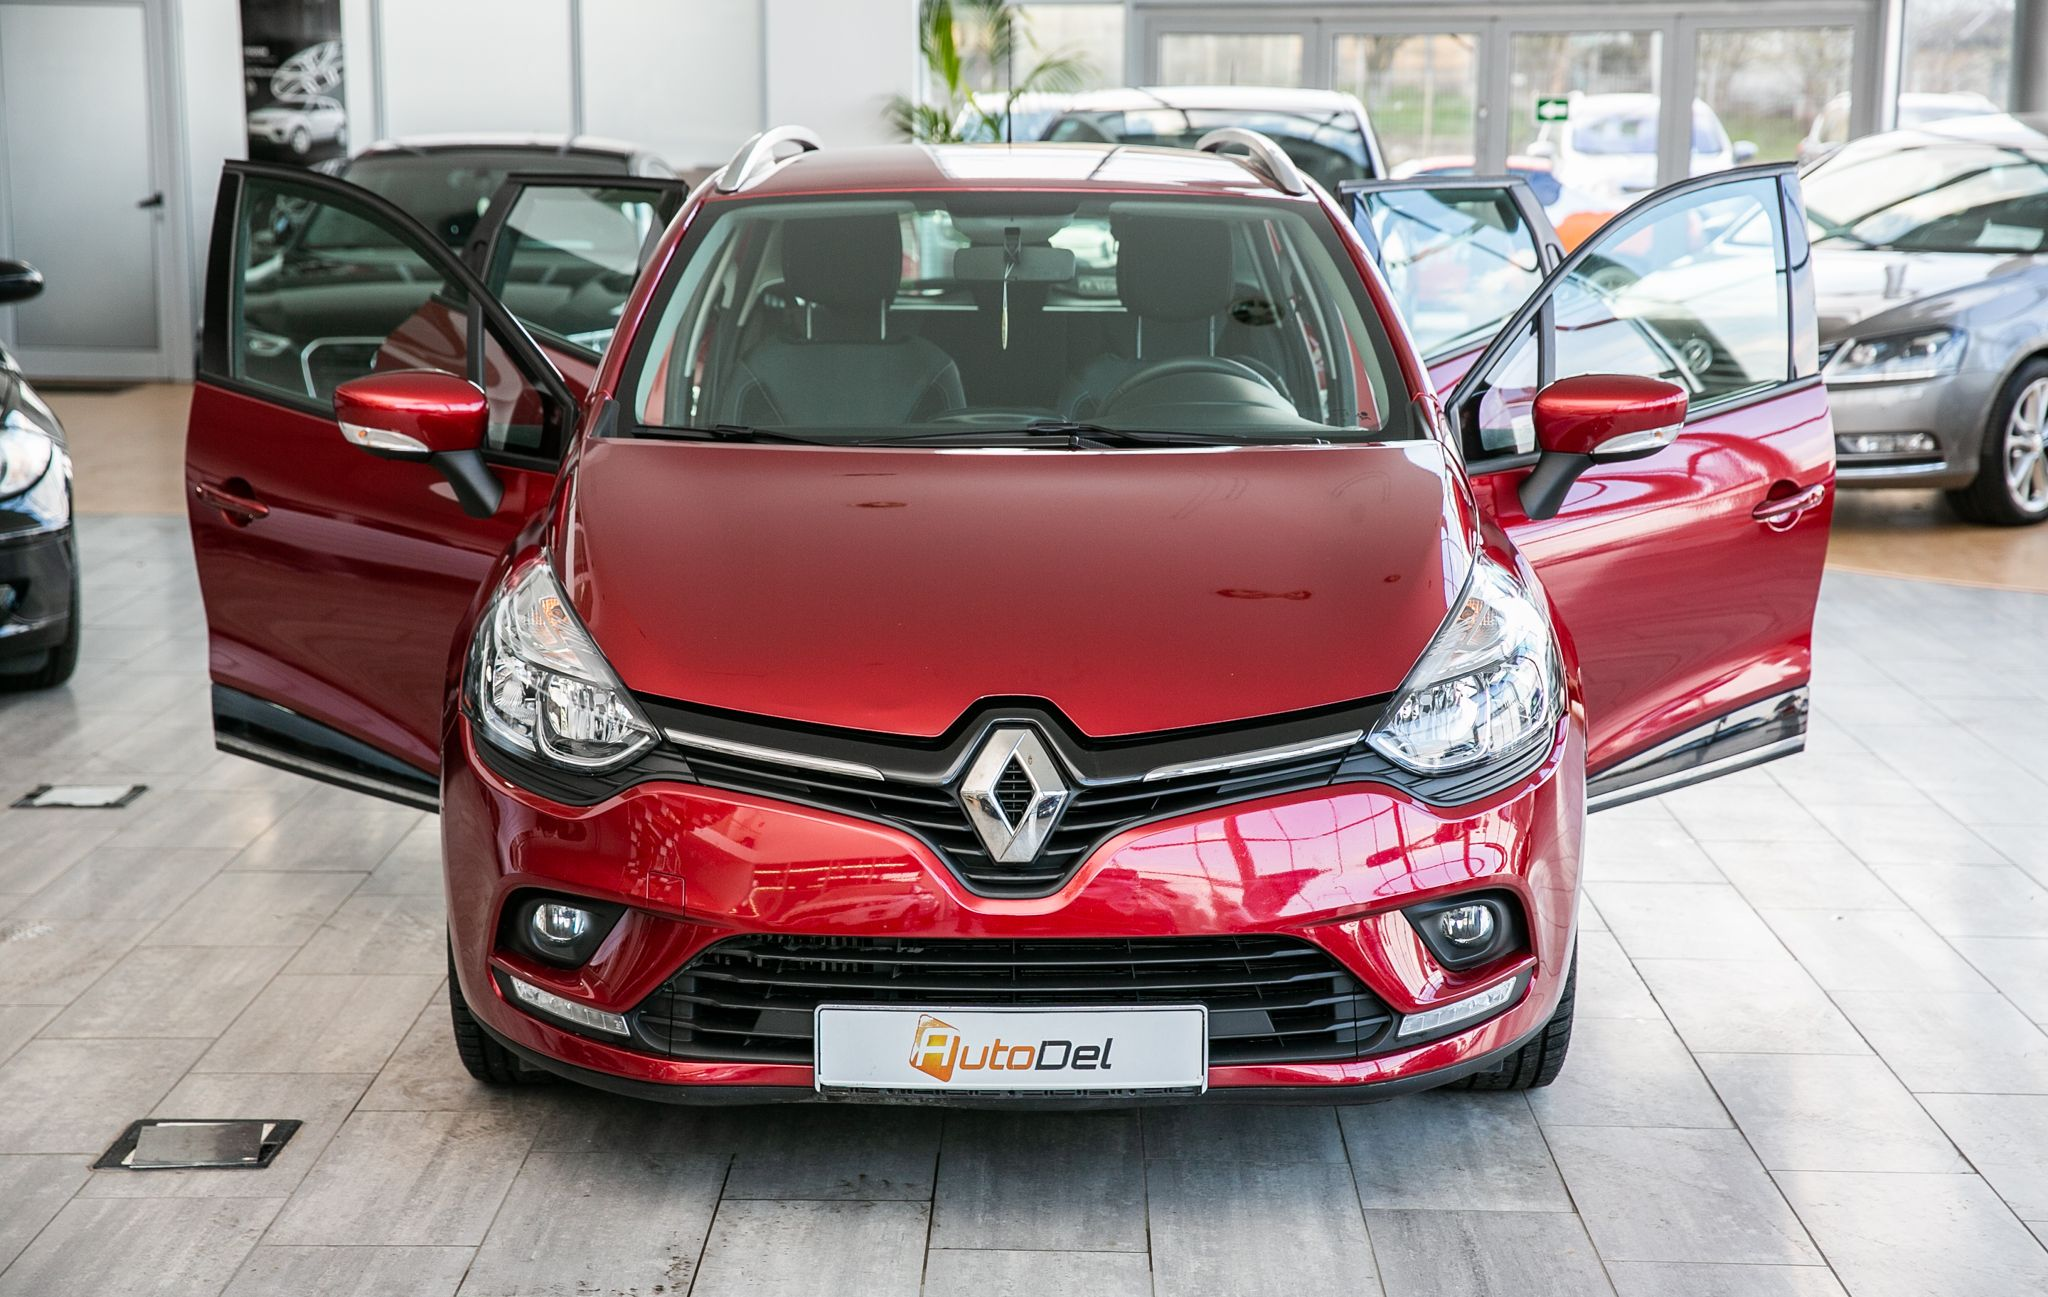 Renault Clio 2017 Second Hand